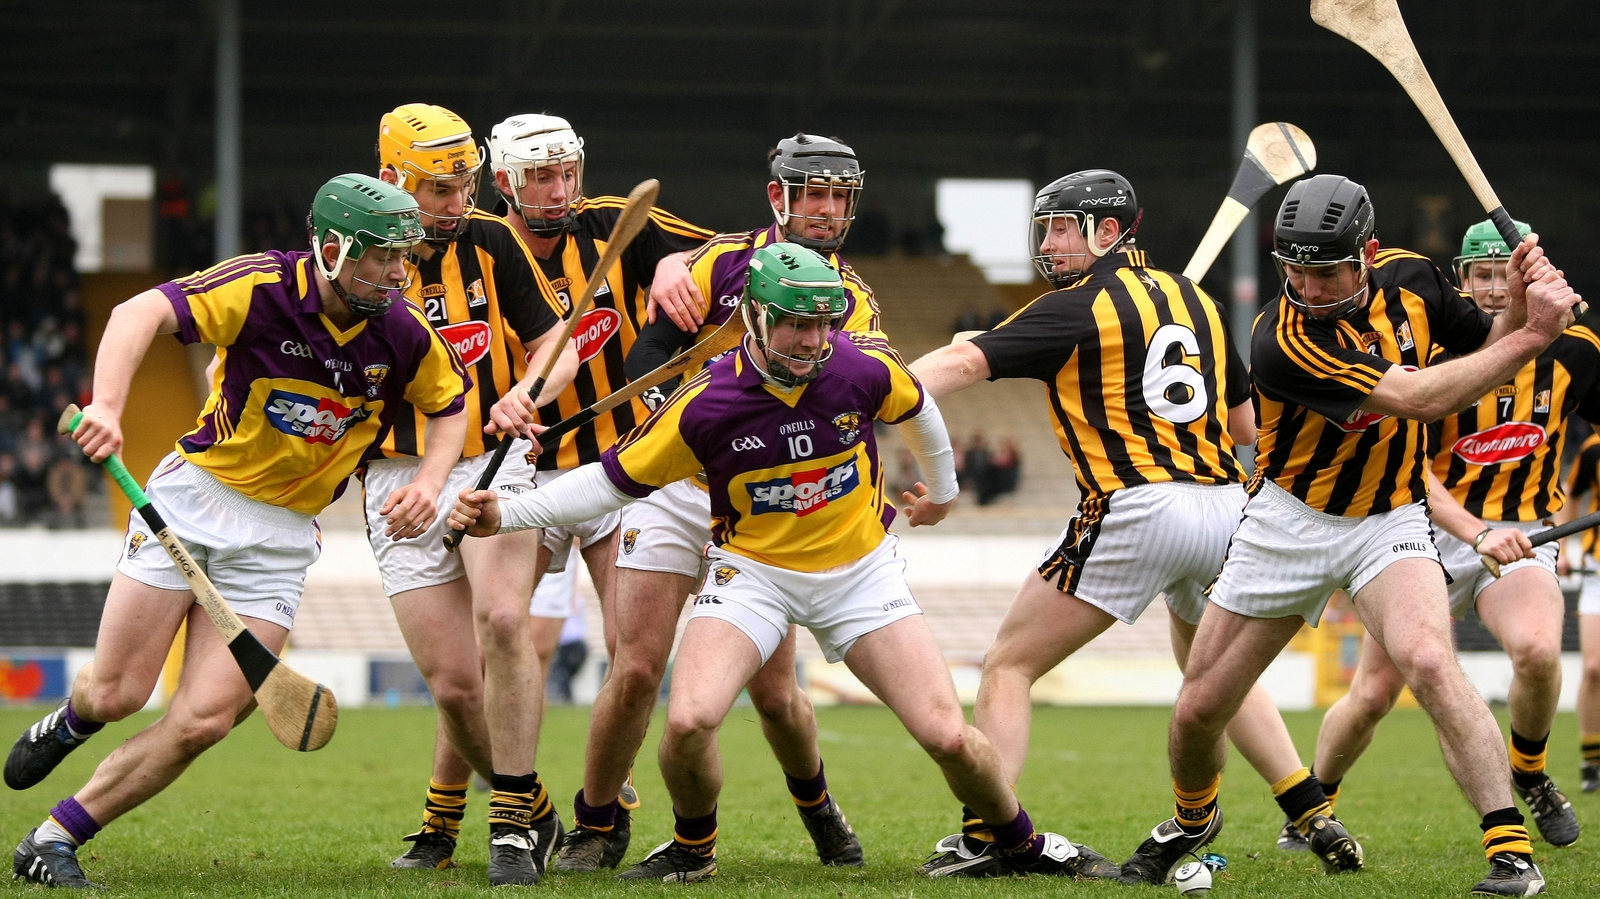 Image - Noel Hickey (R) prepares to make a clearance against Wexford in 2011